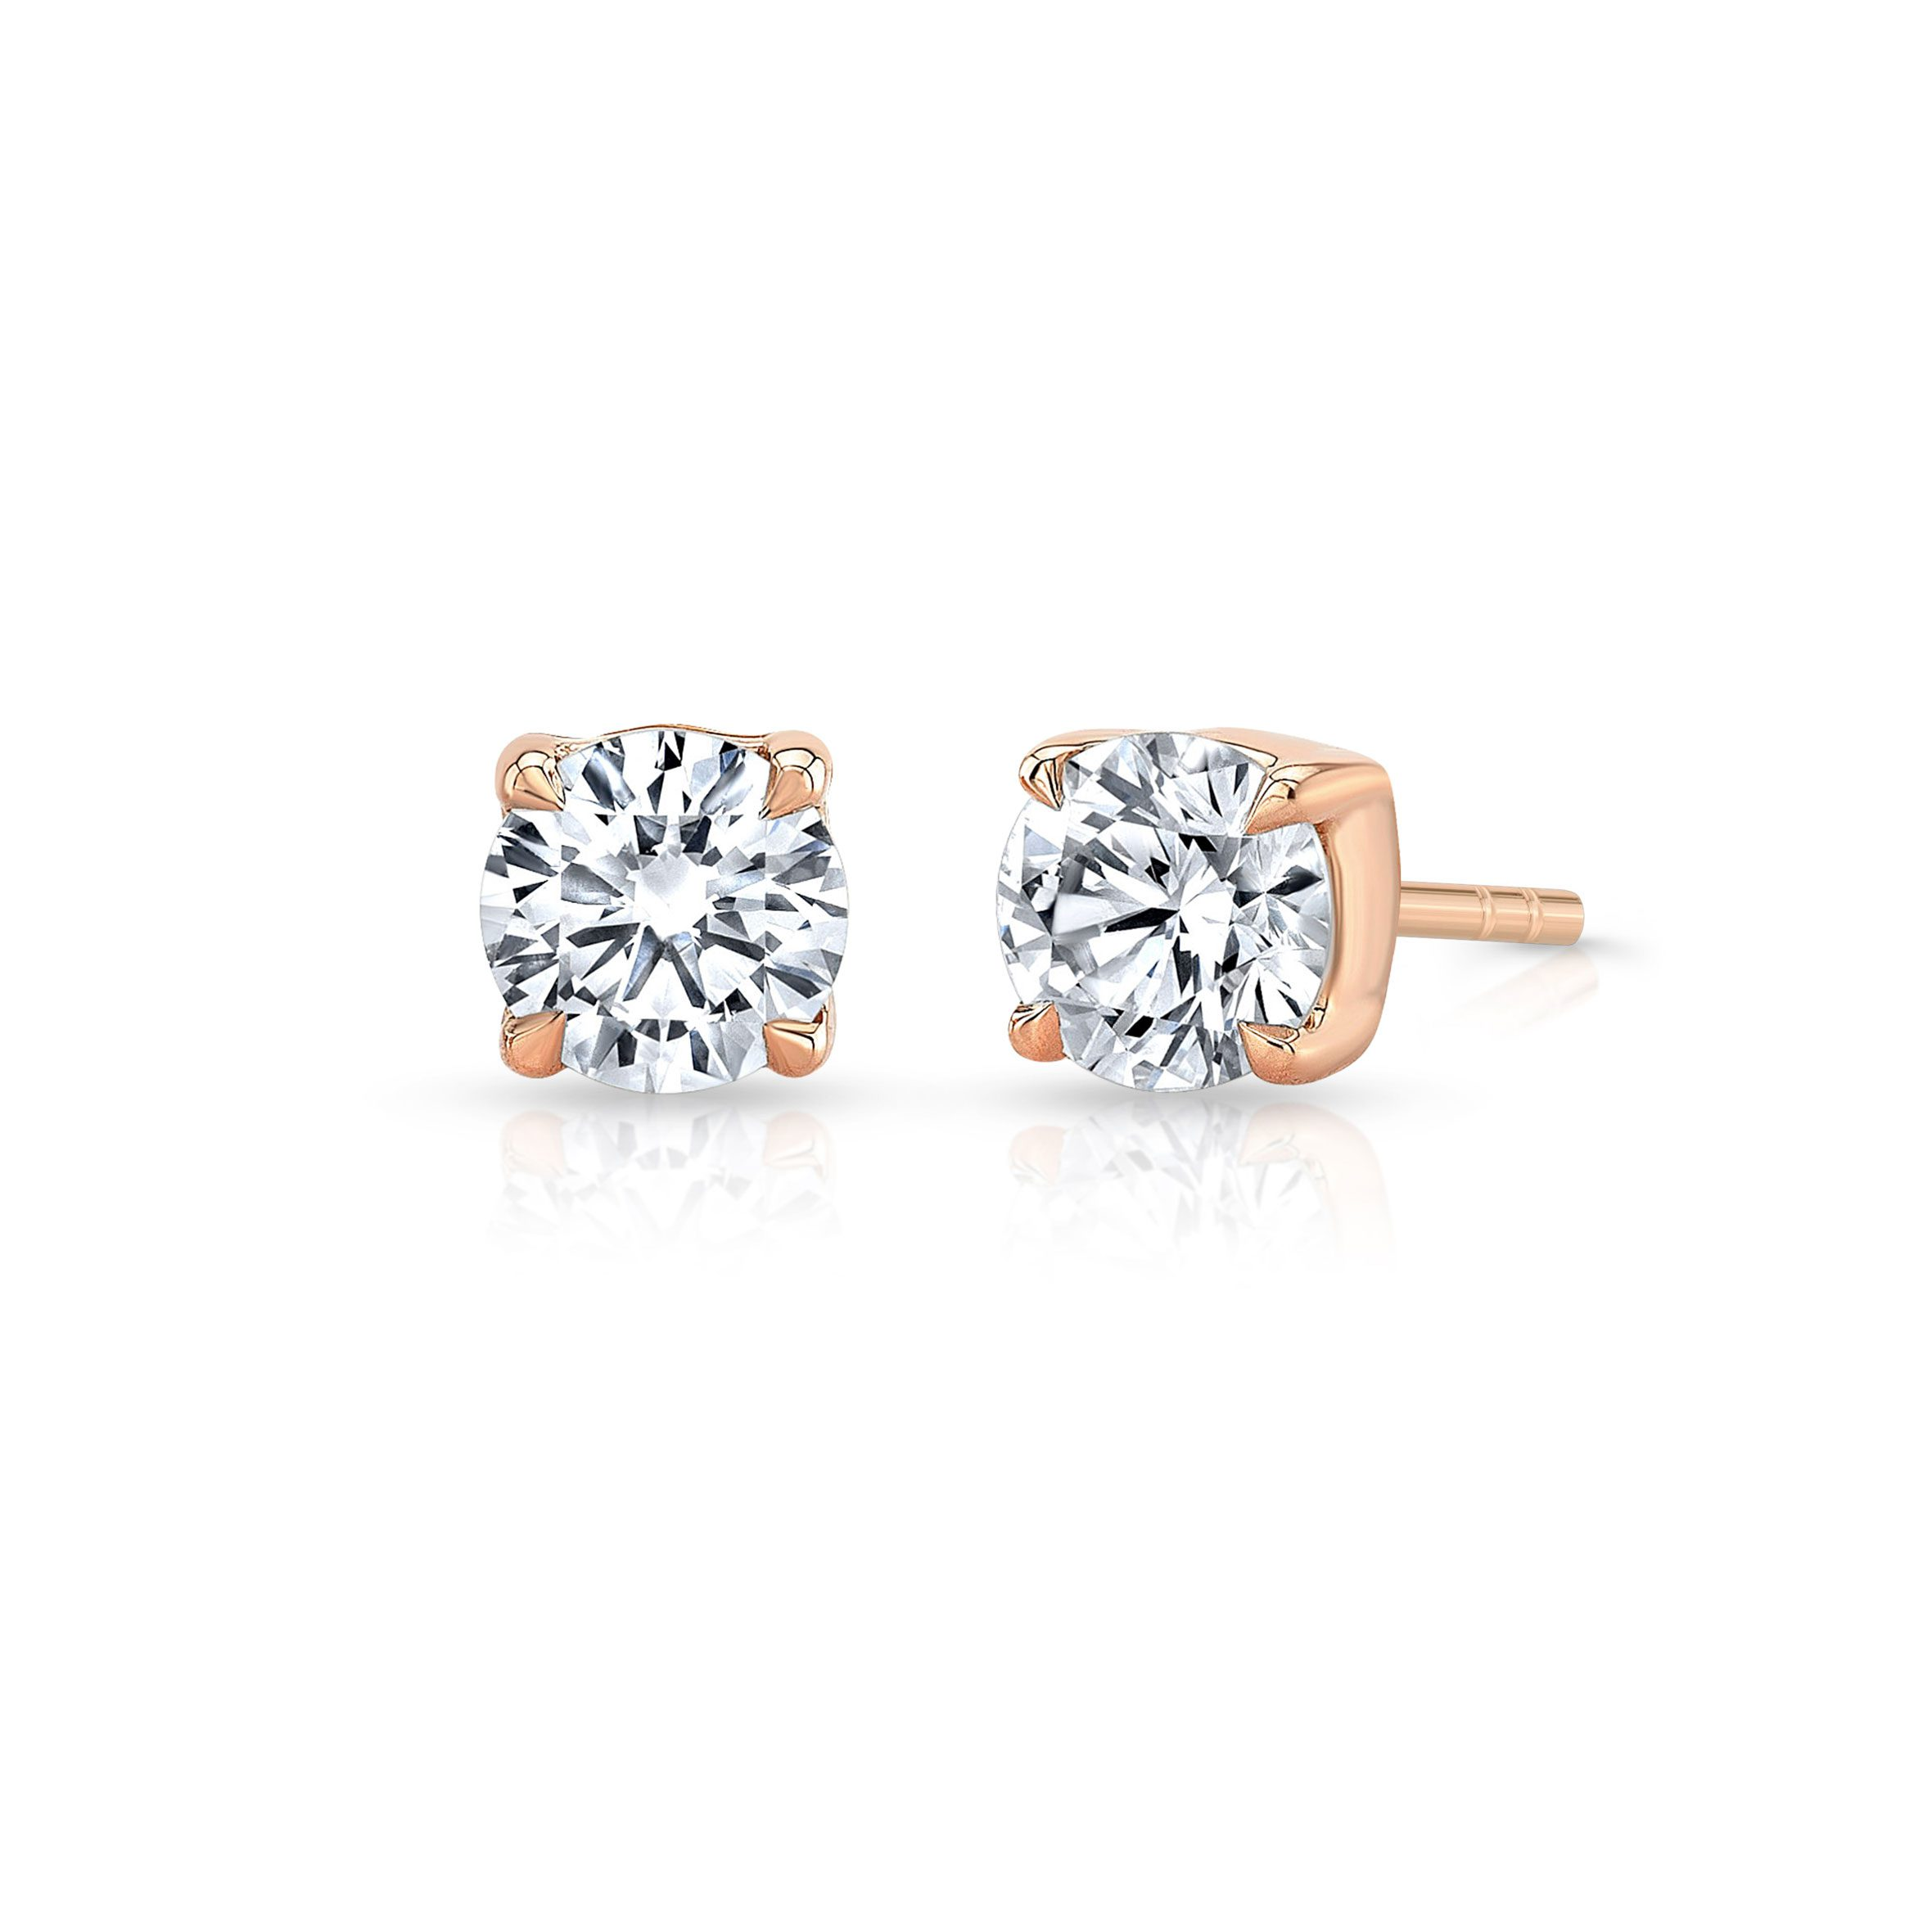 Carlie Round Brilliant Lab Grown Diamond Studs in Rose Gold Product Shot Side View from Oui by Jean Dousset